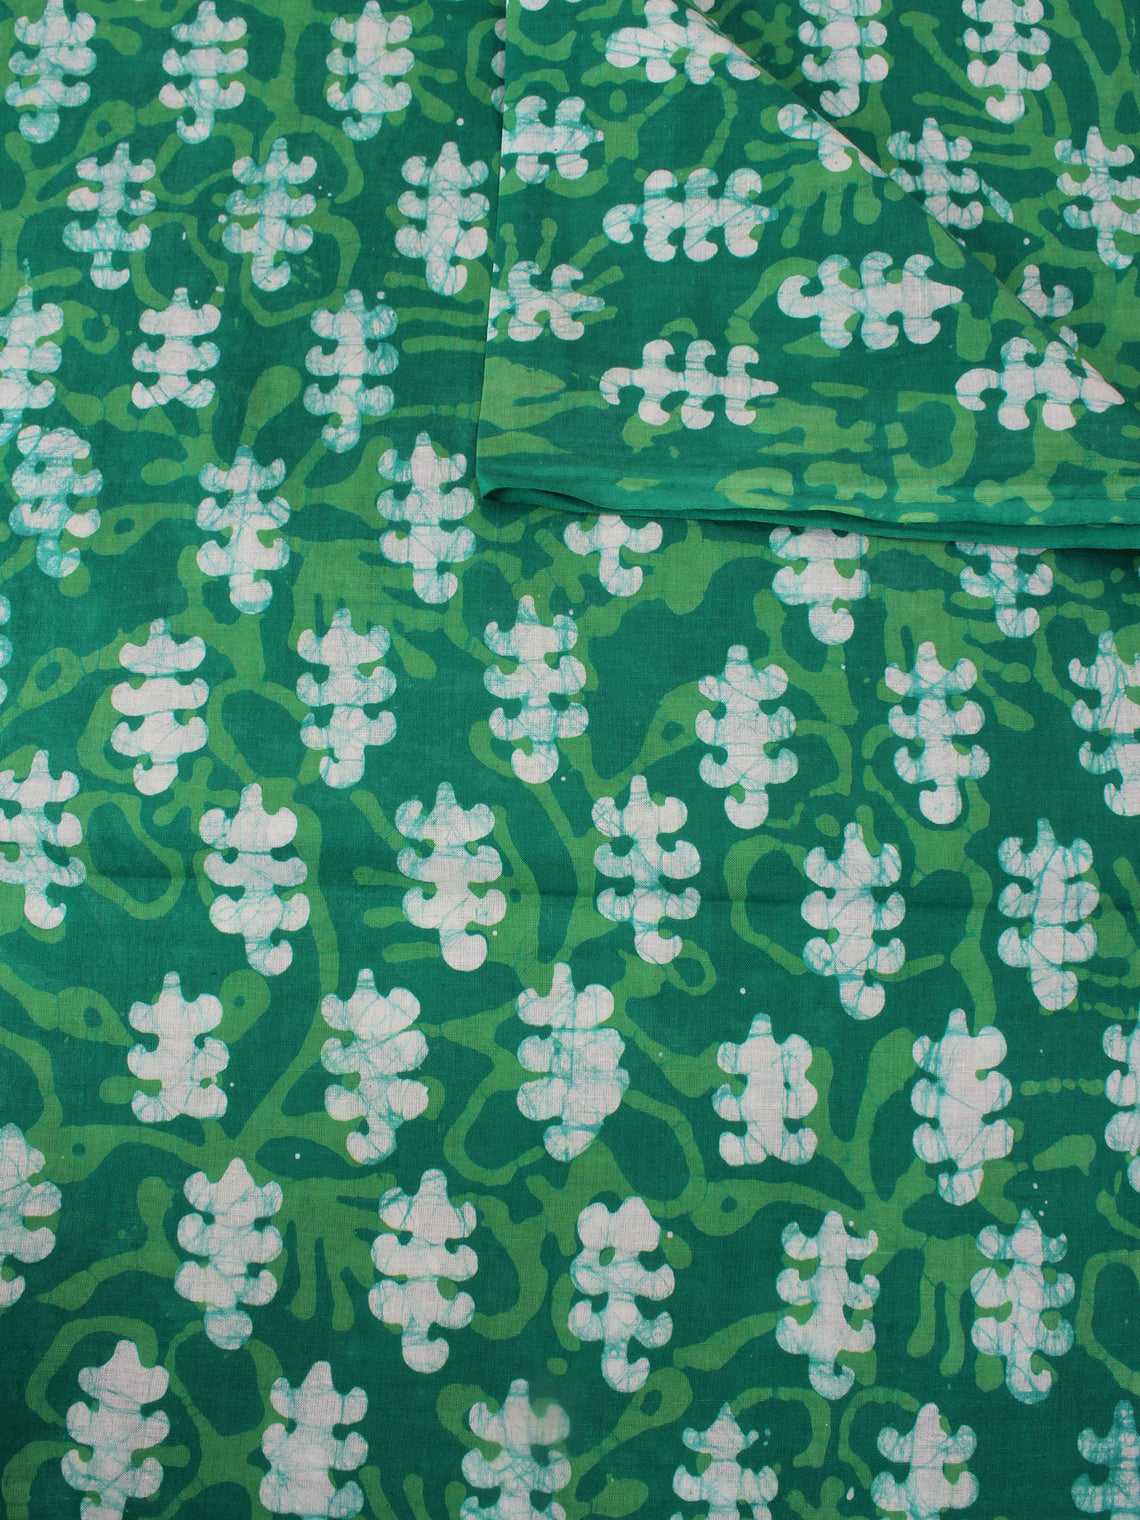 Green White Hand Block Printed Cotton Fabric Per Meter - F0916320